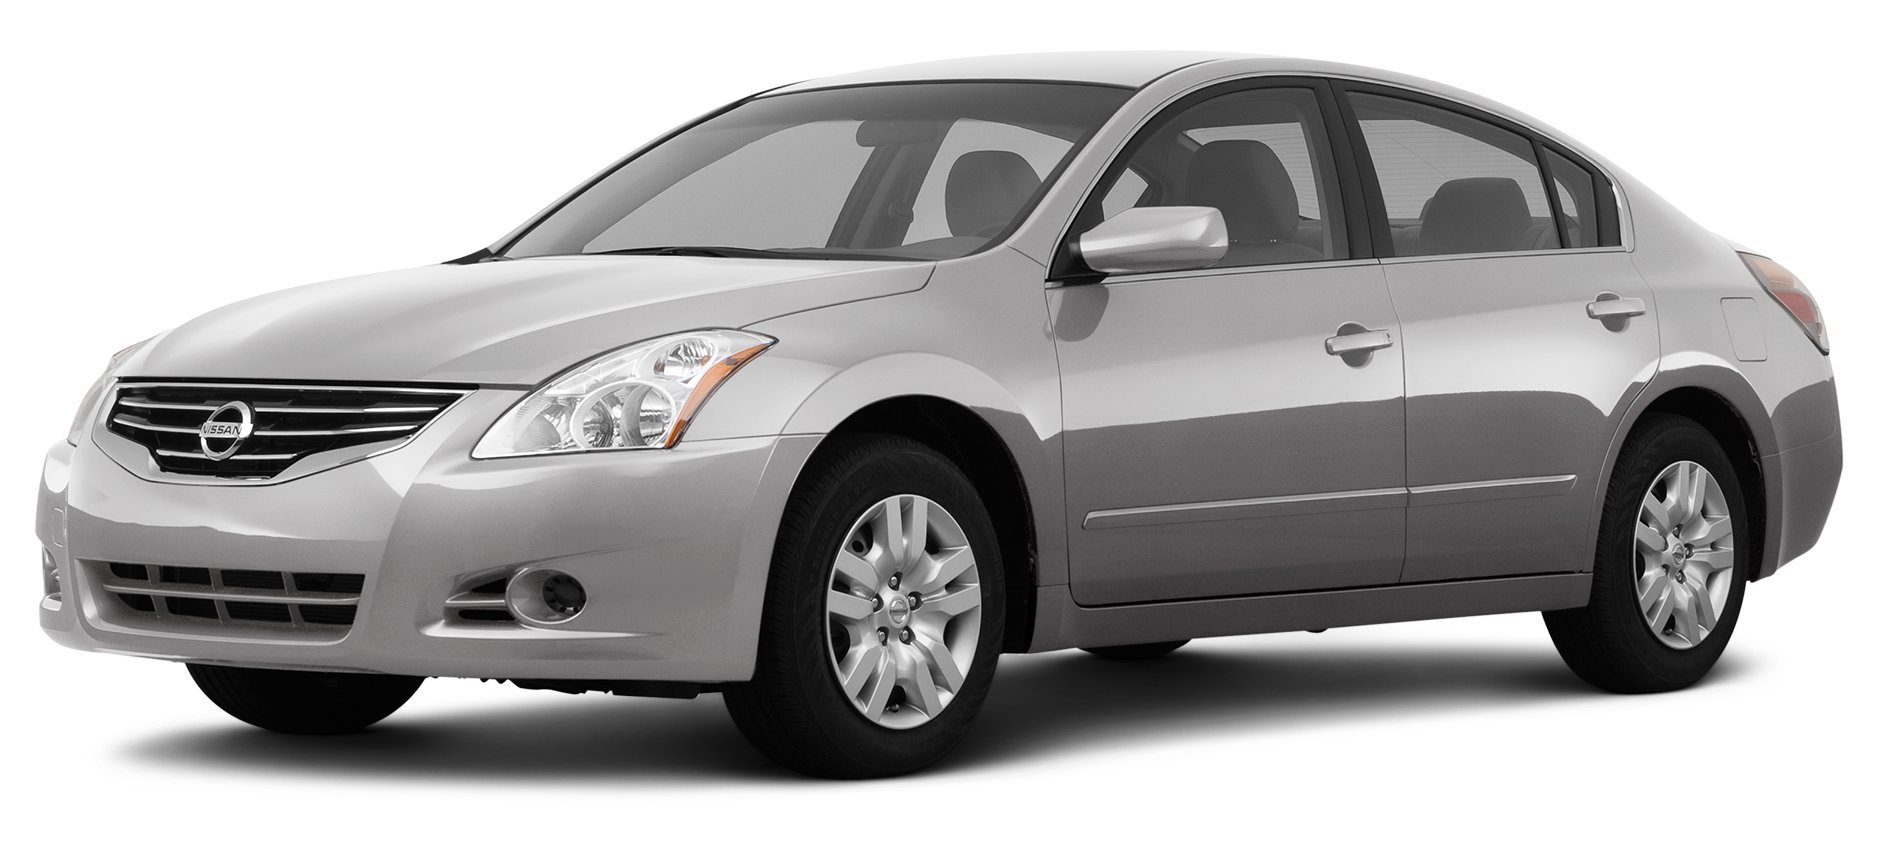 2012 nissan altima reviews images and specs. Black Bedroom Furniture Sets. Home Design Ideas